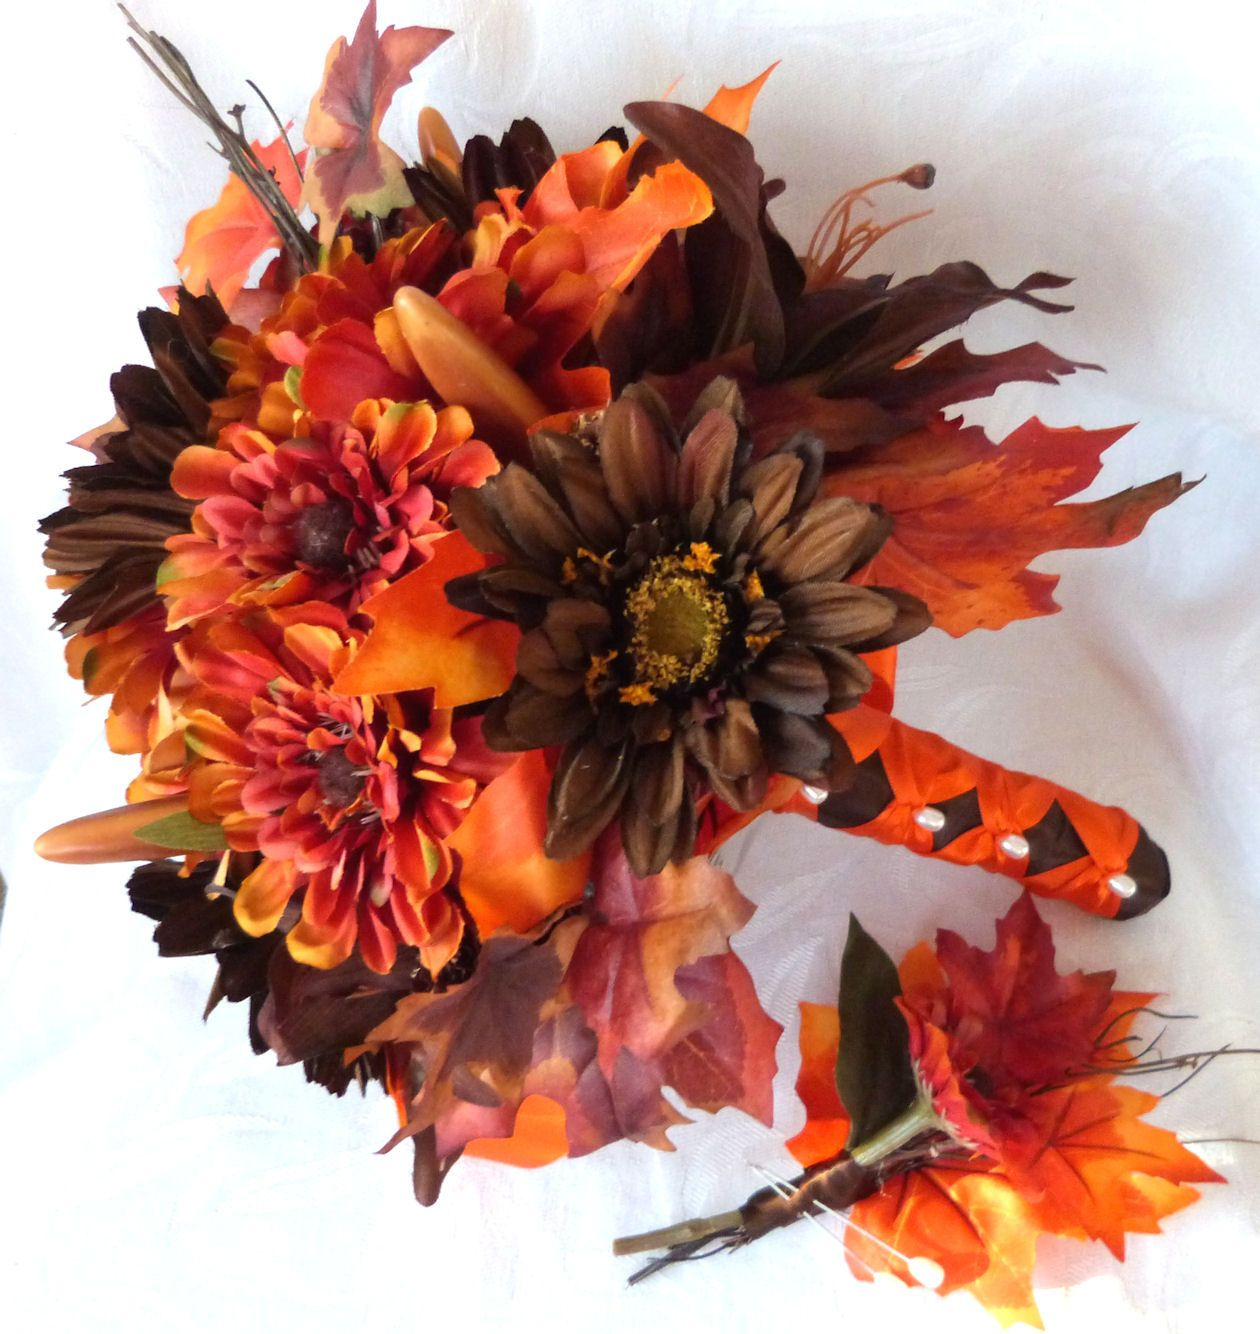 Fall colors bridal bouquet silk flower wedding bouquet shades of red fall colors bridal bouquet silk flower wedding bouquet shades of red and brown bouquet and boutonniere izmirmasajfo Images